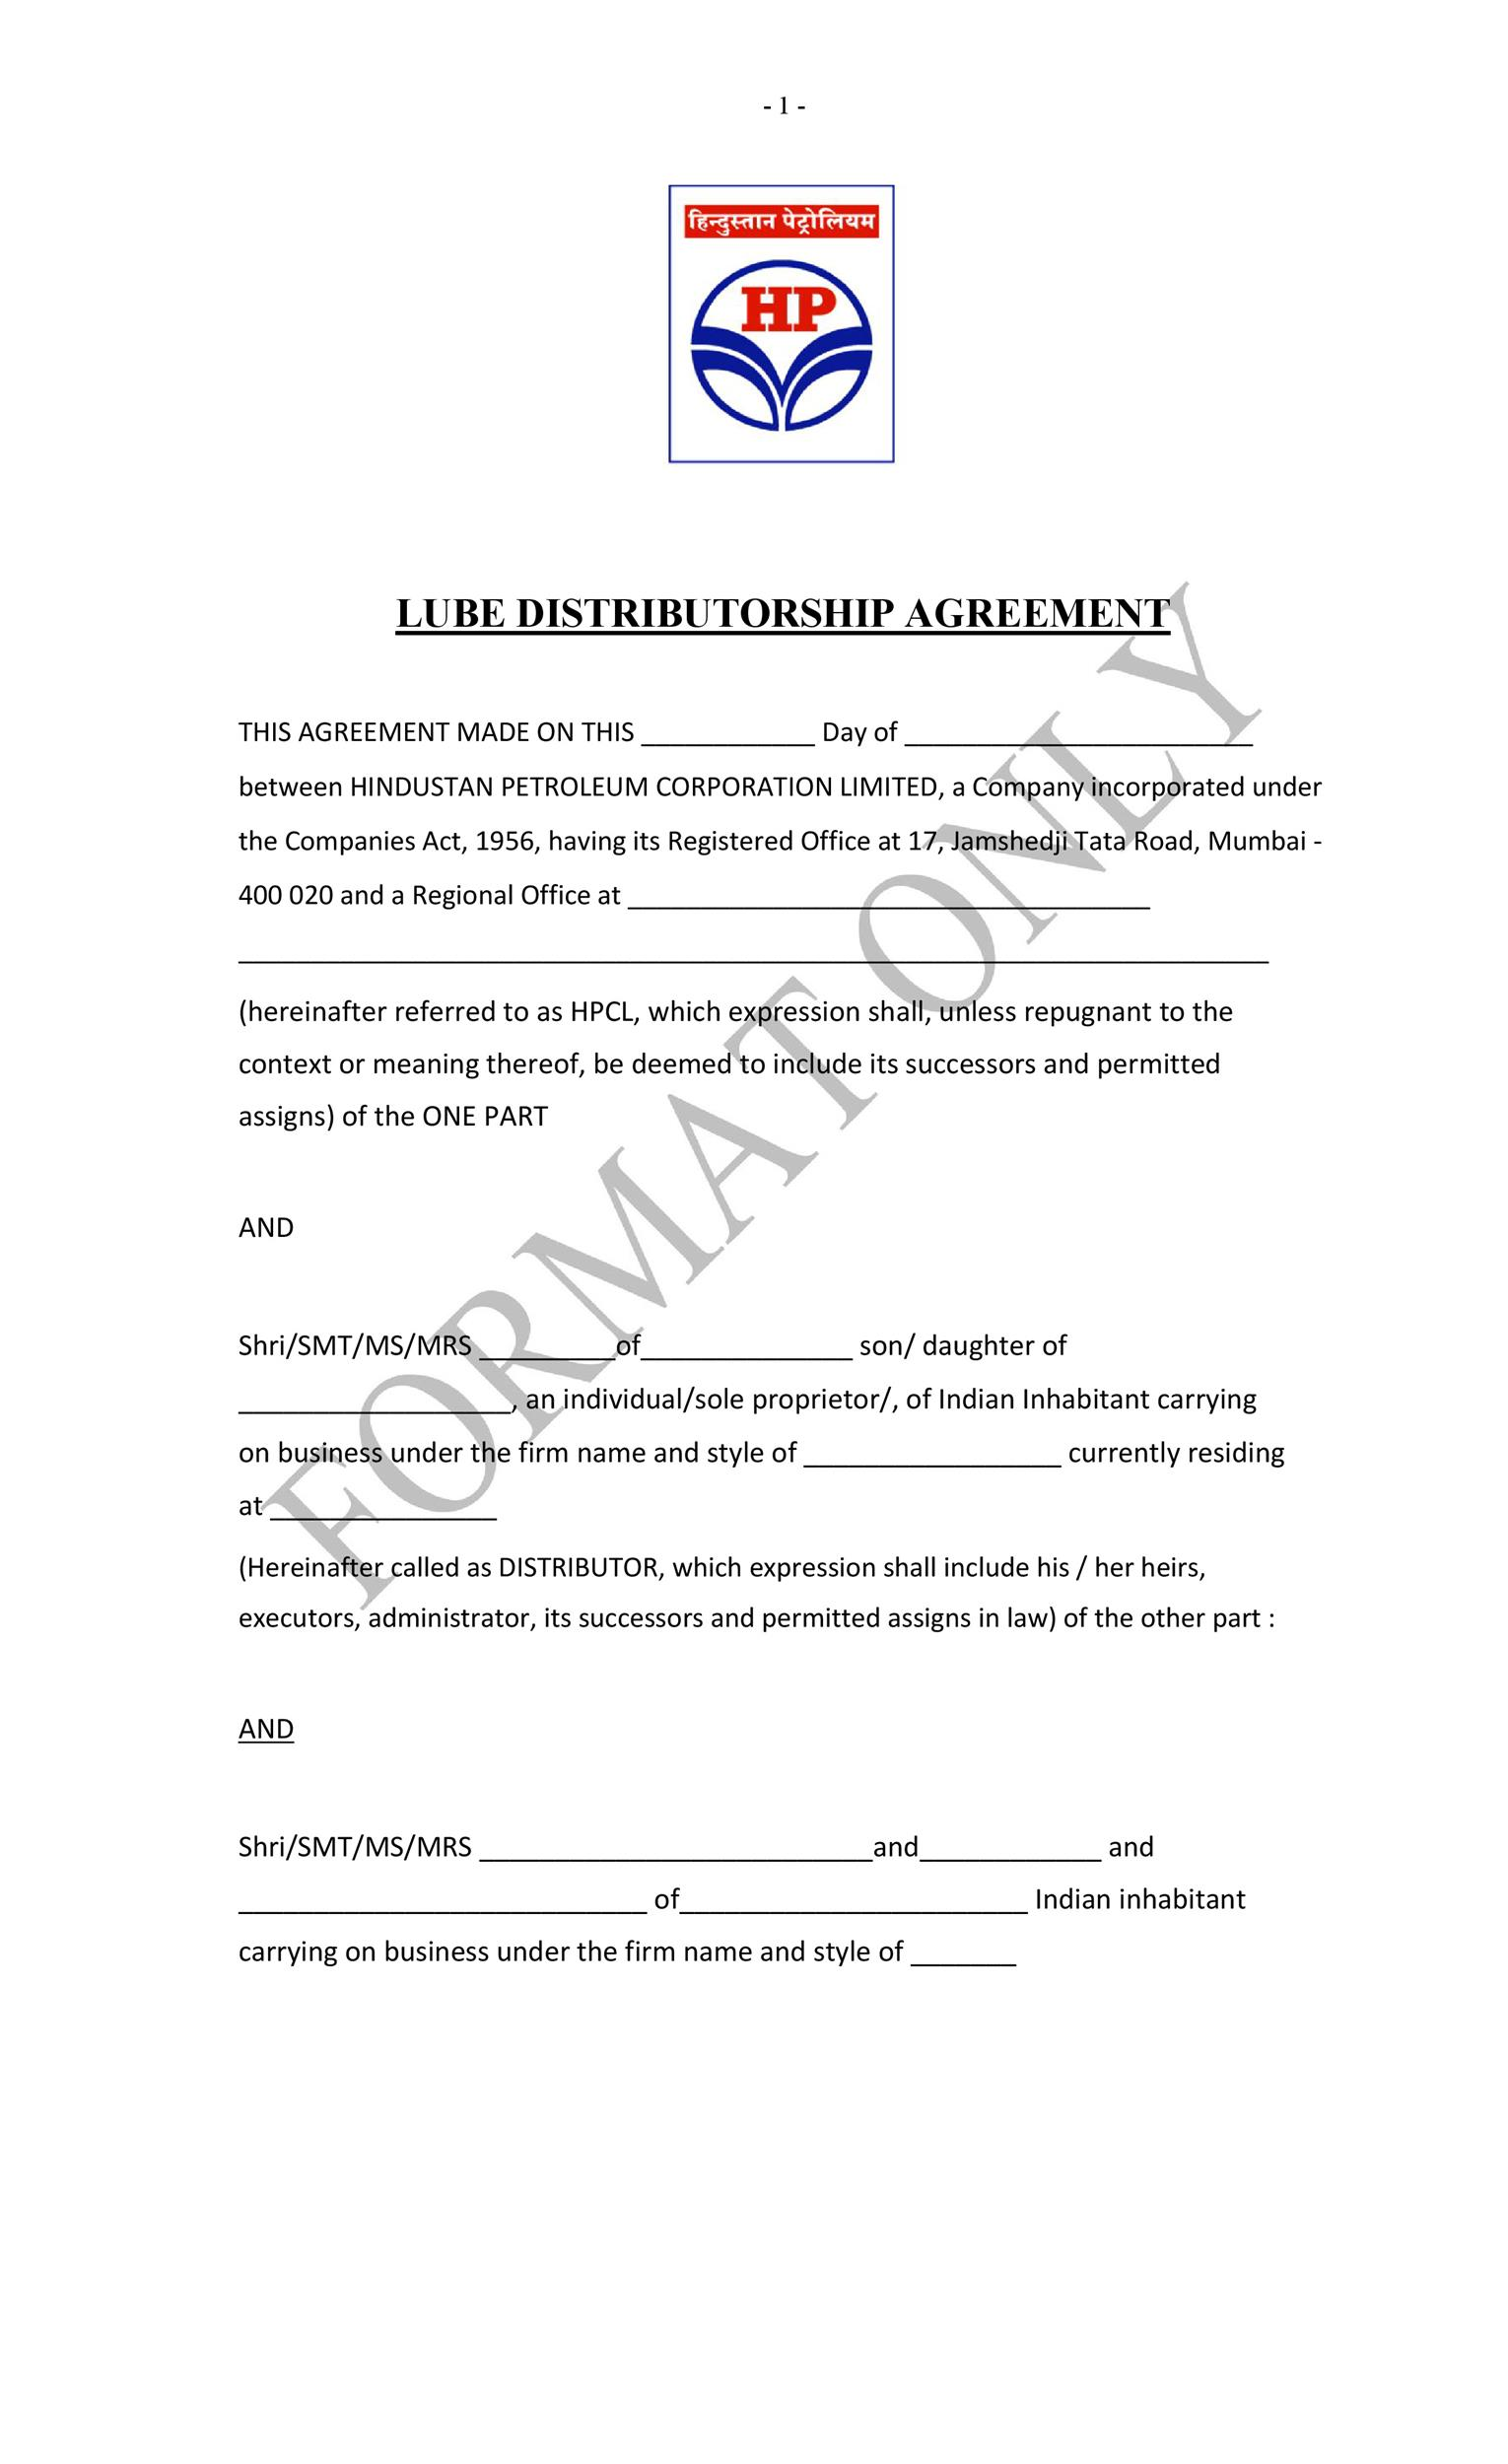 007 Incredible Exclusive Distribution Contract Template High Resolution  Sole Distributor Agreement Non FreeFull